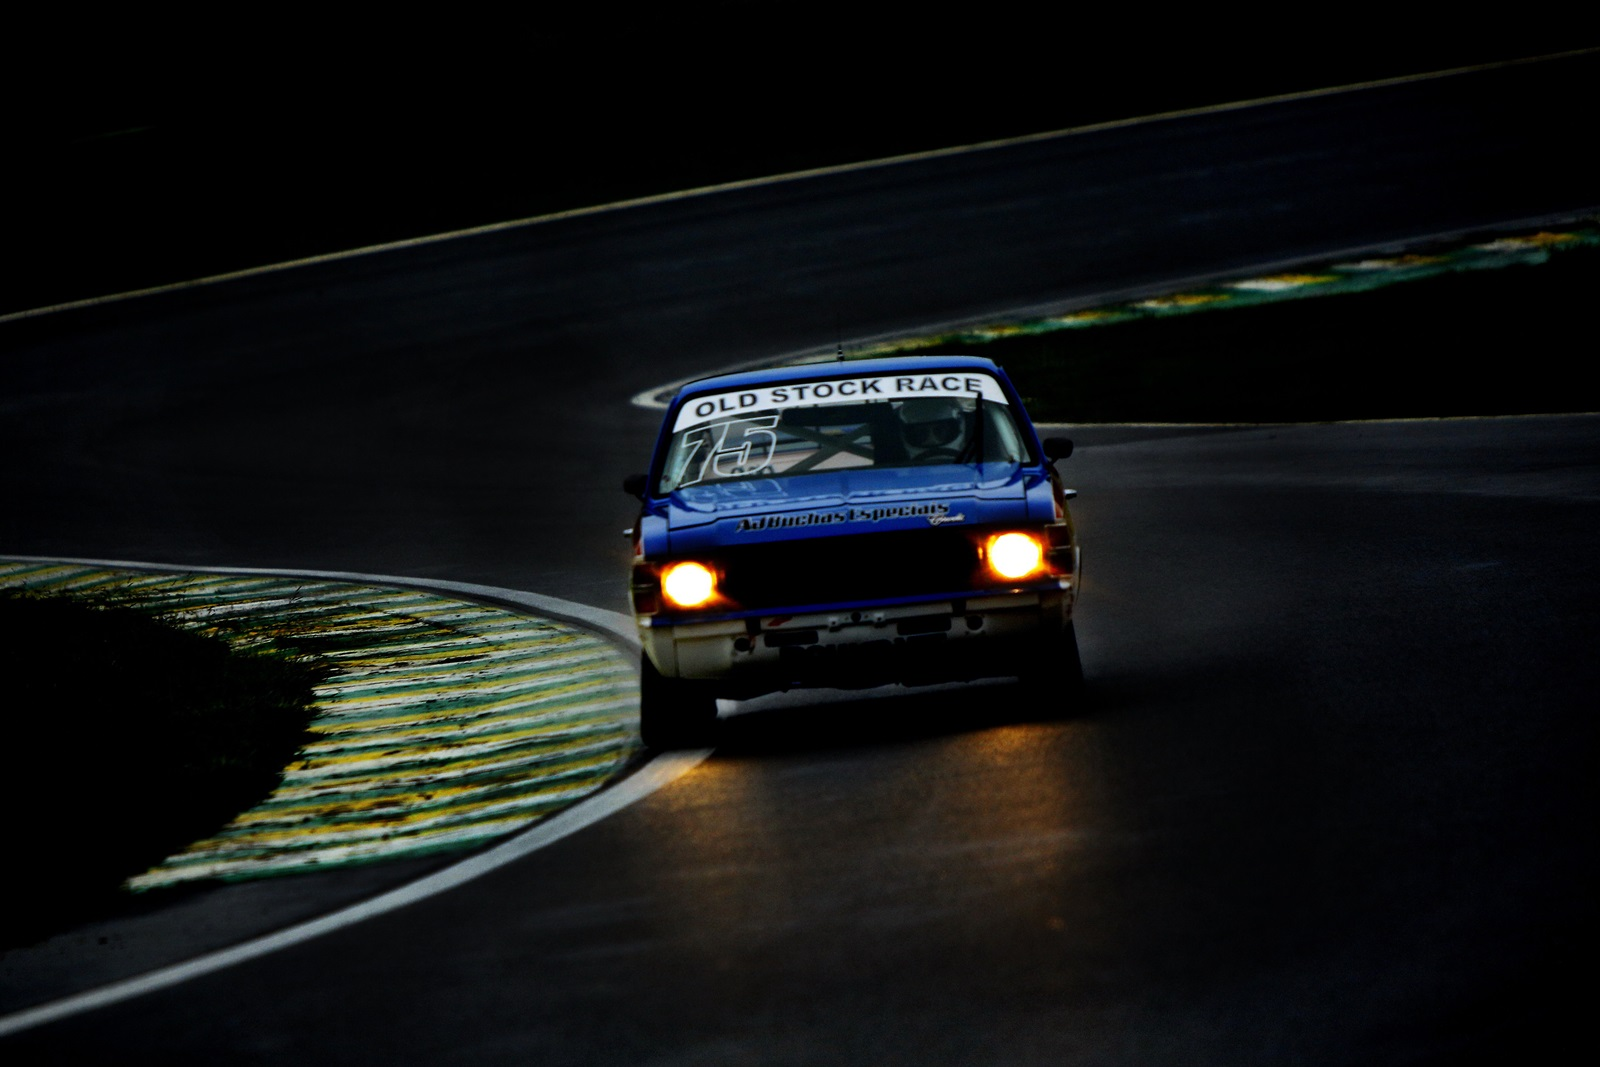 Photo of Old Stock Race – Prova Noturna Resgata o Charme do Automobilismo.